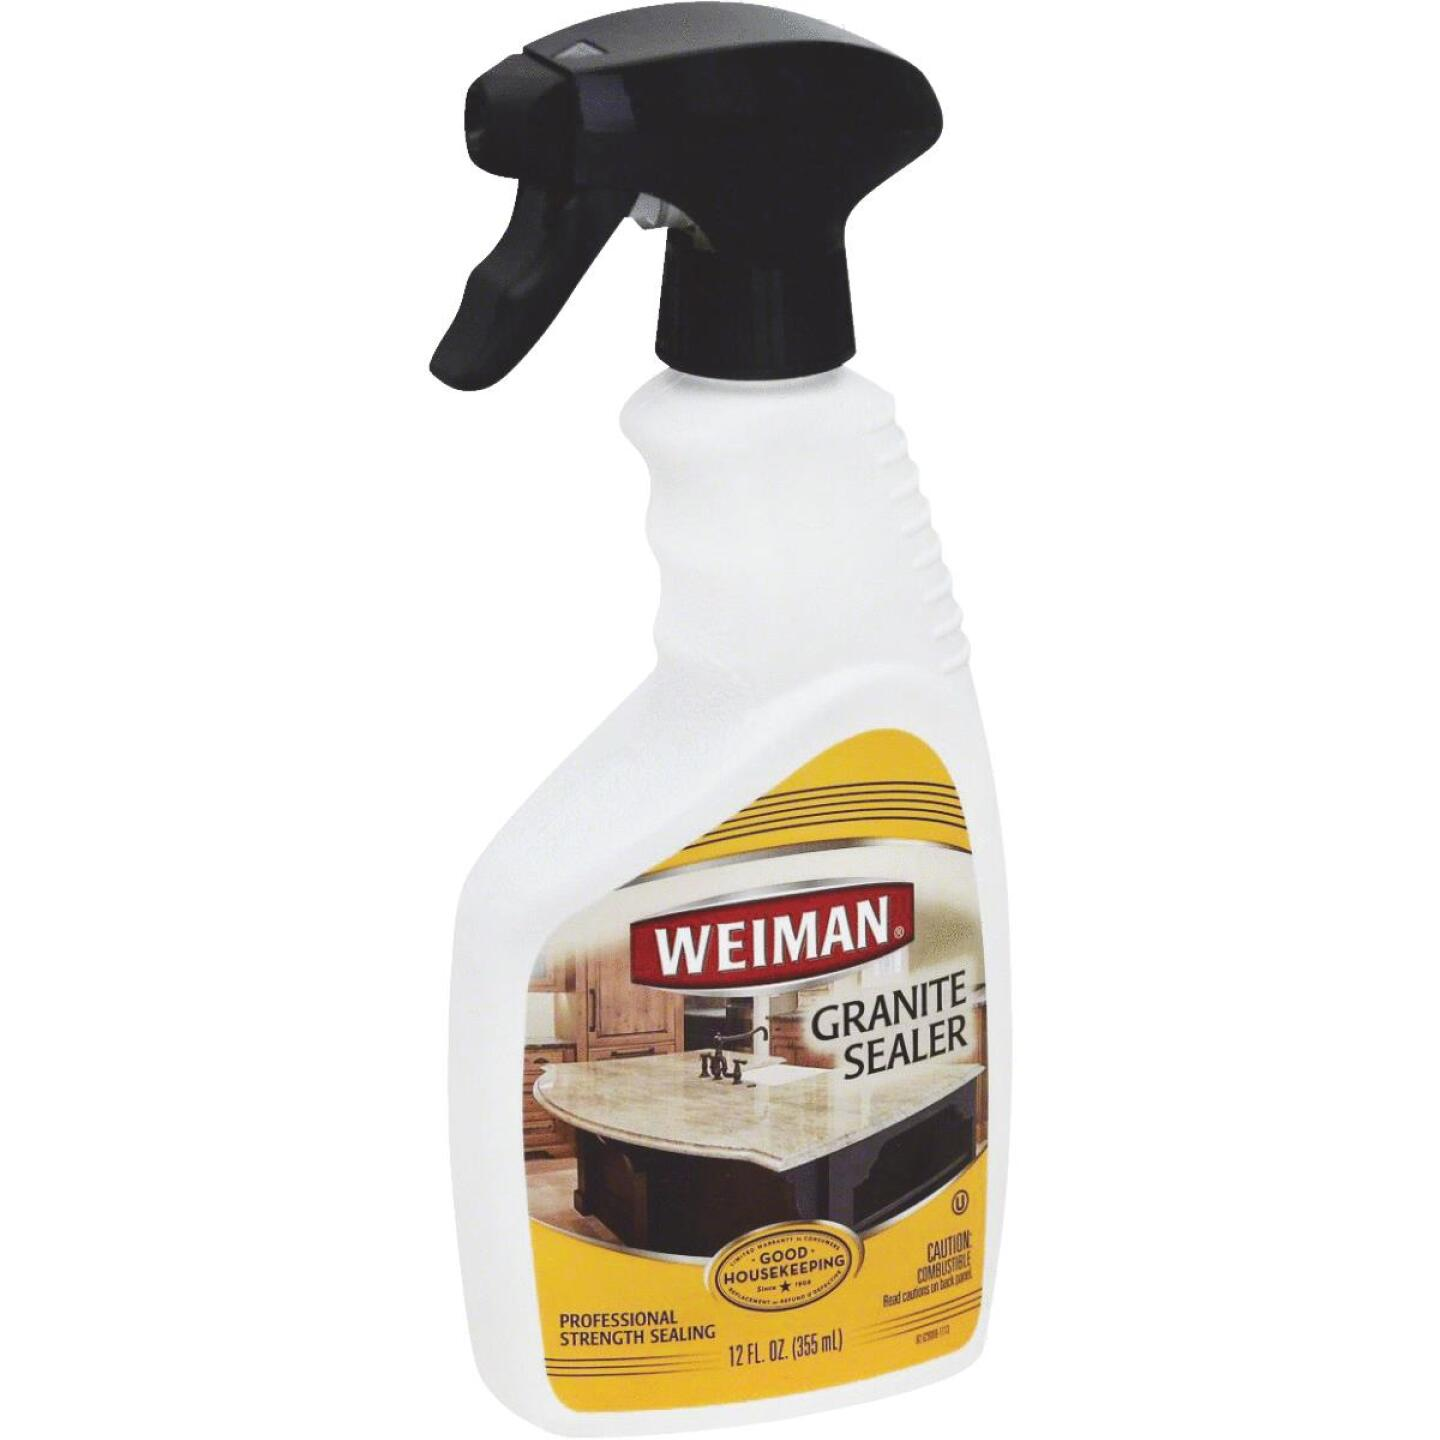 Weiman 12 Oz. Granite Liquid Sealer Image 1